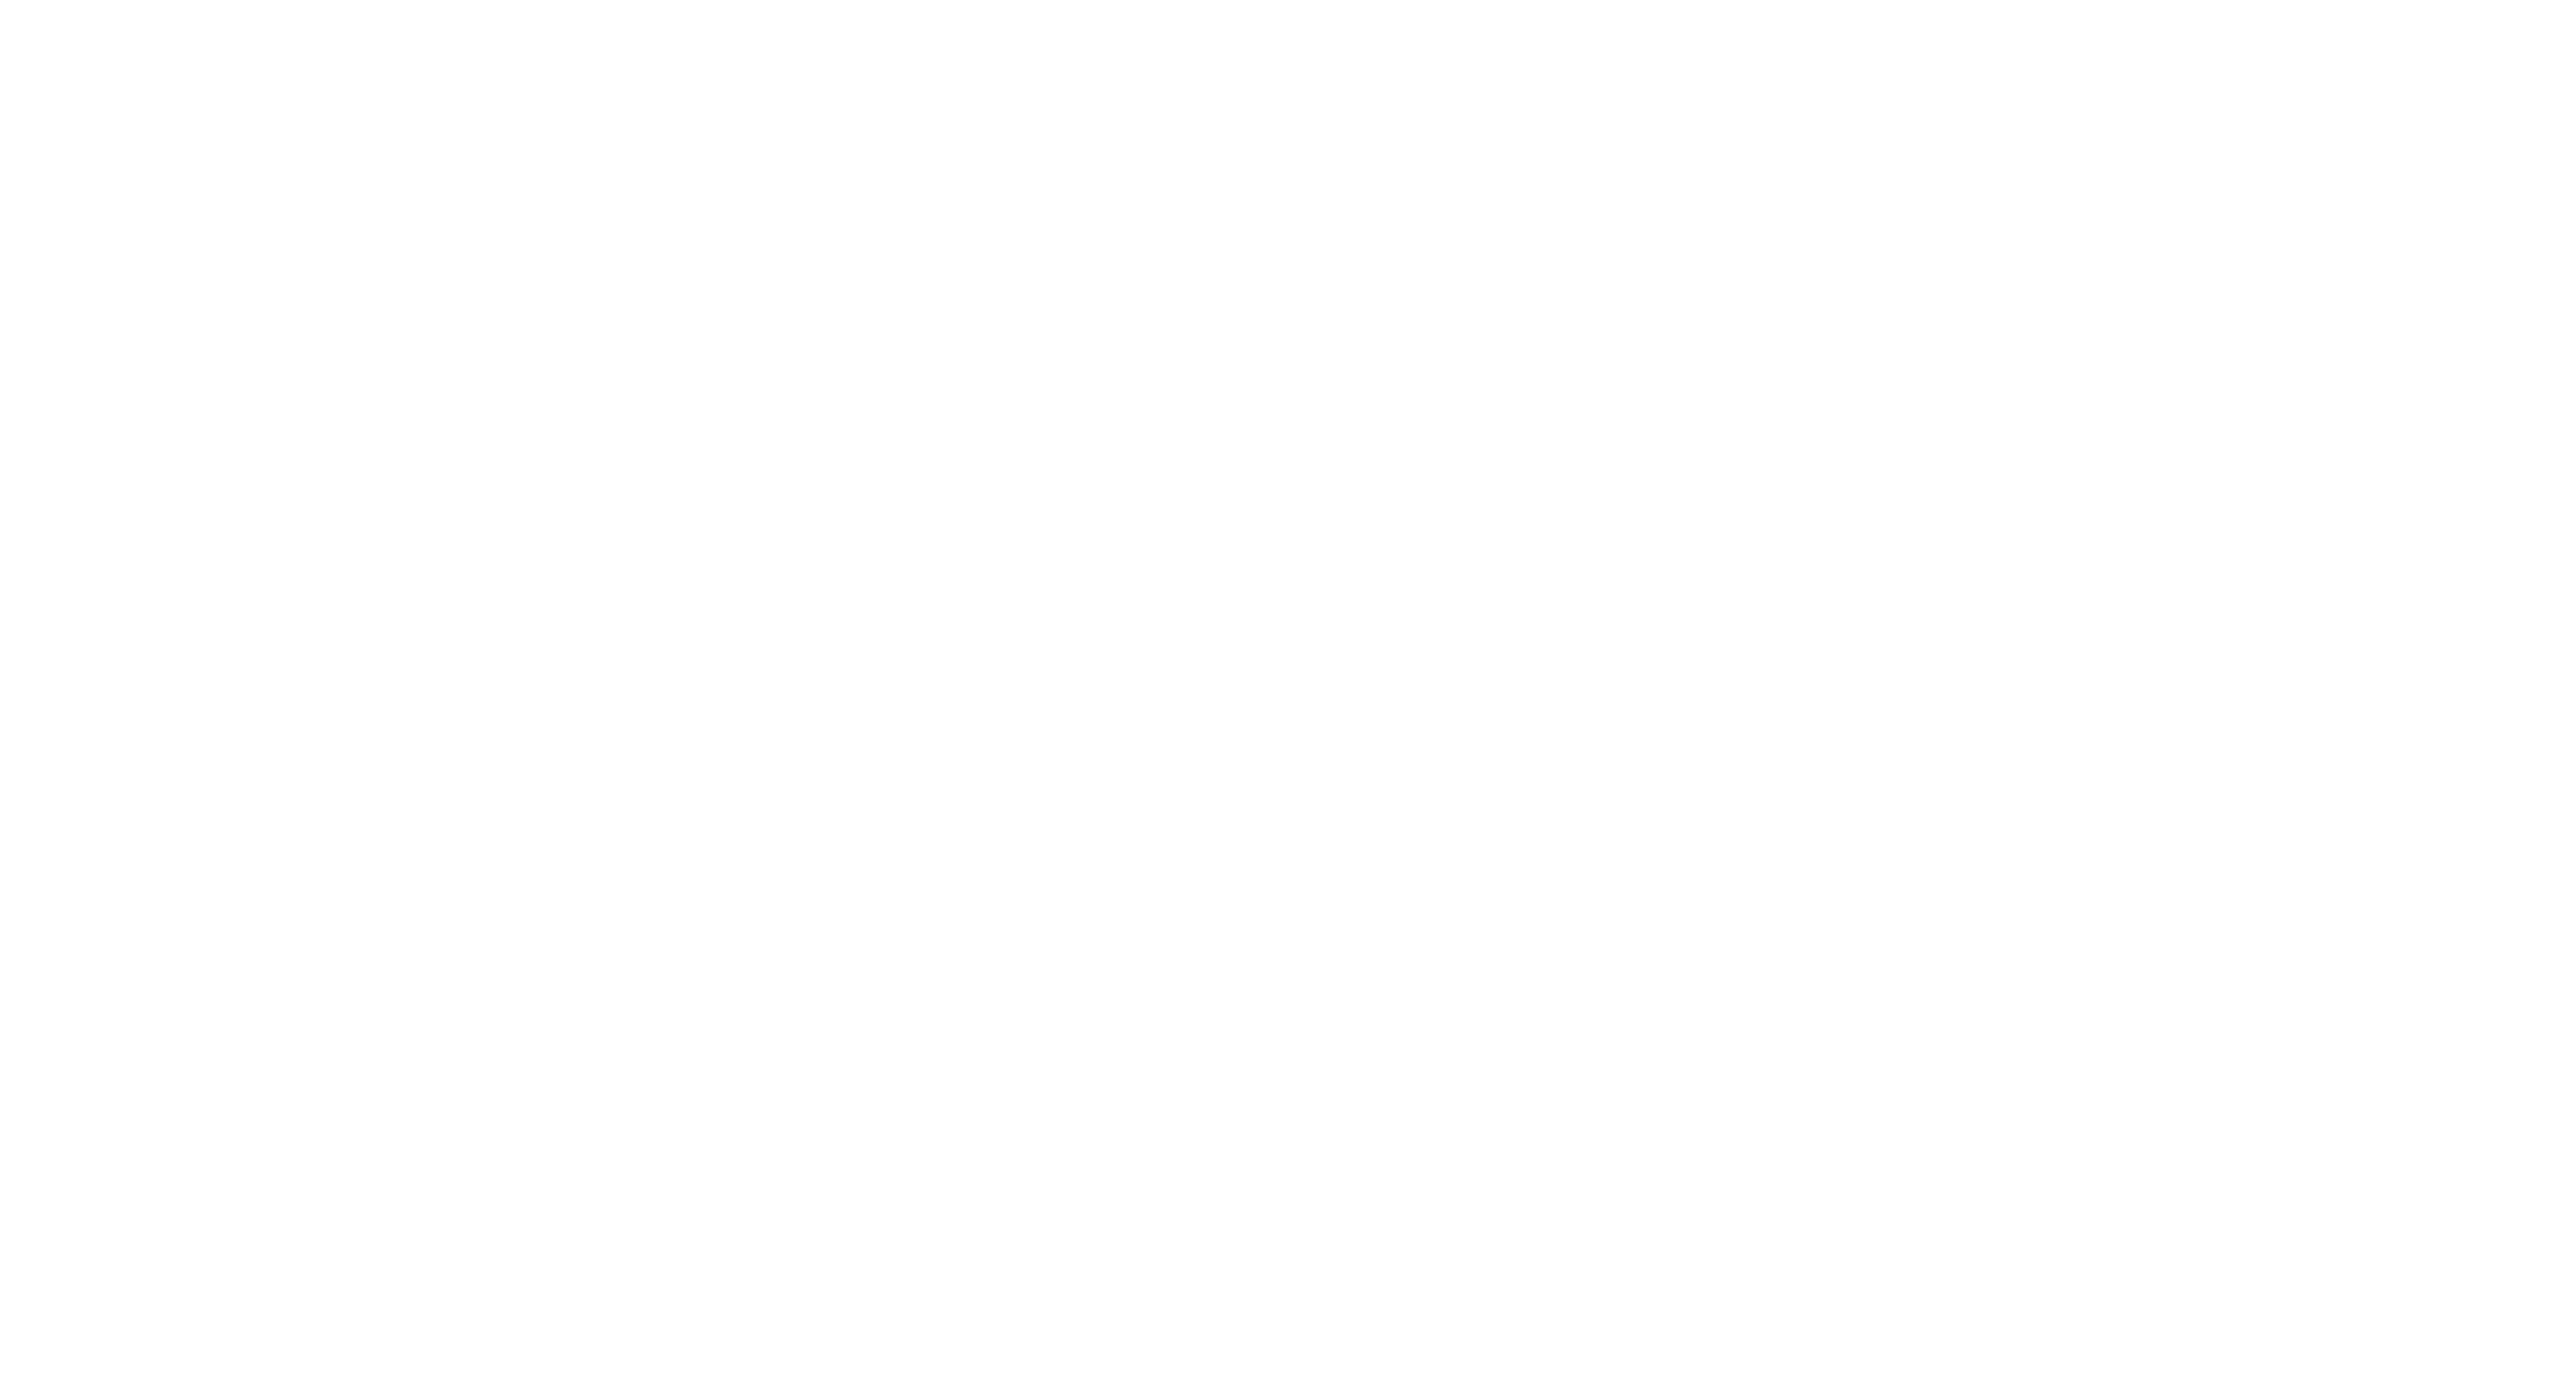 ARCM Roofing